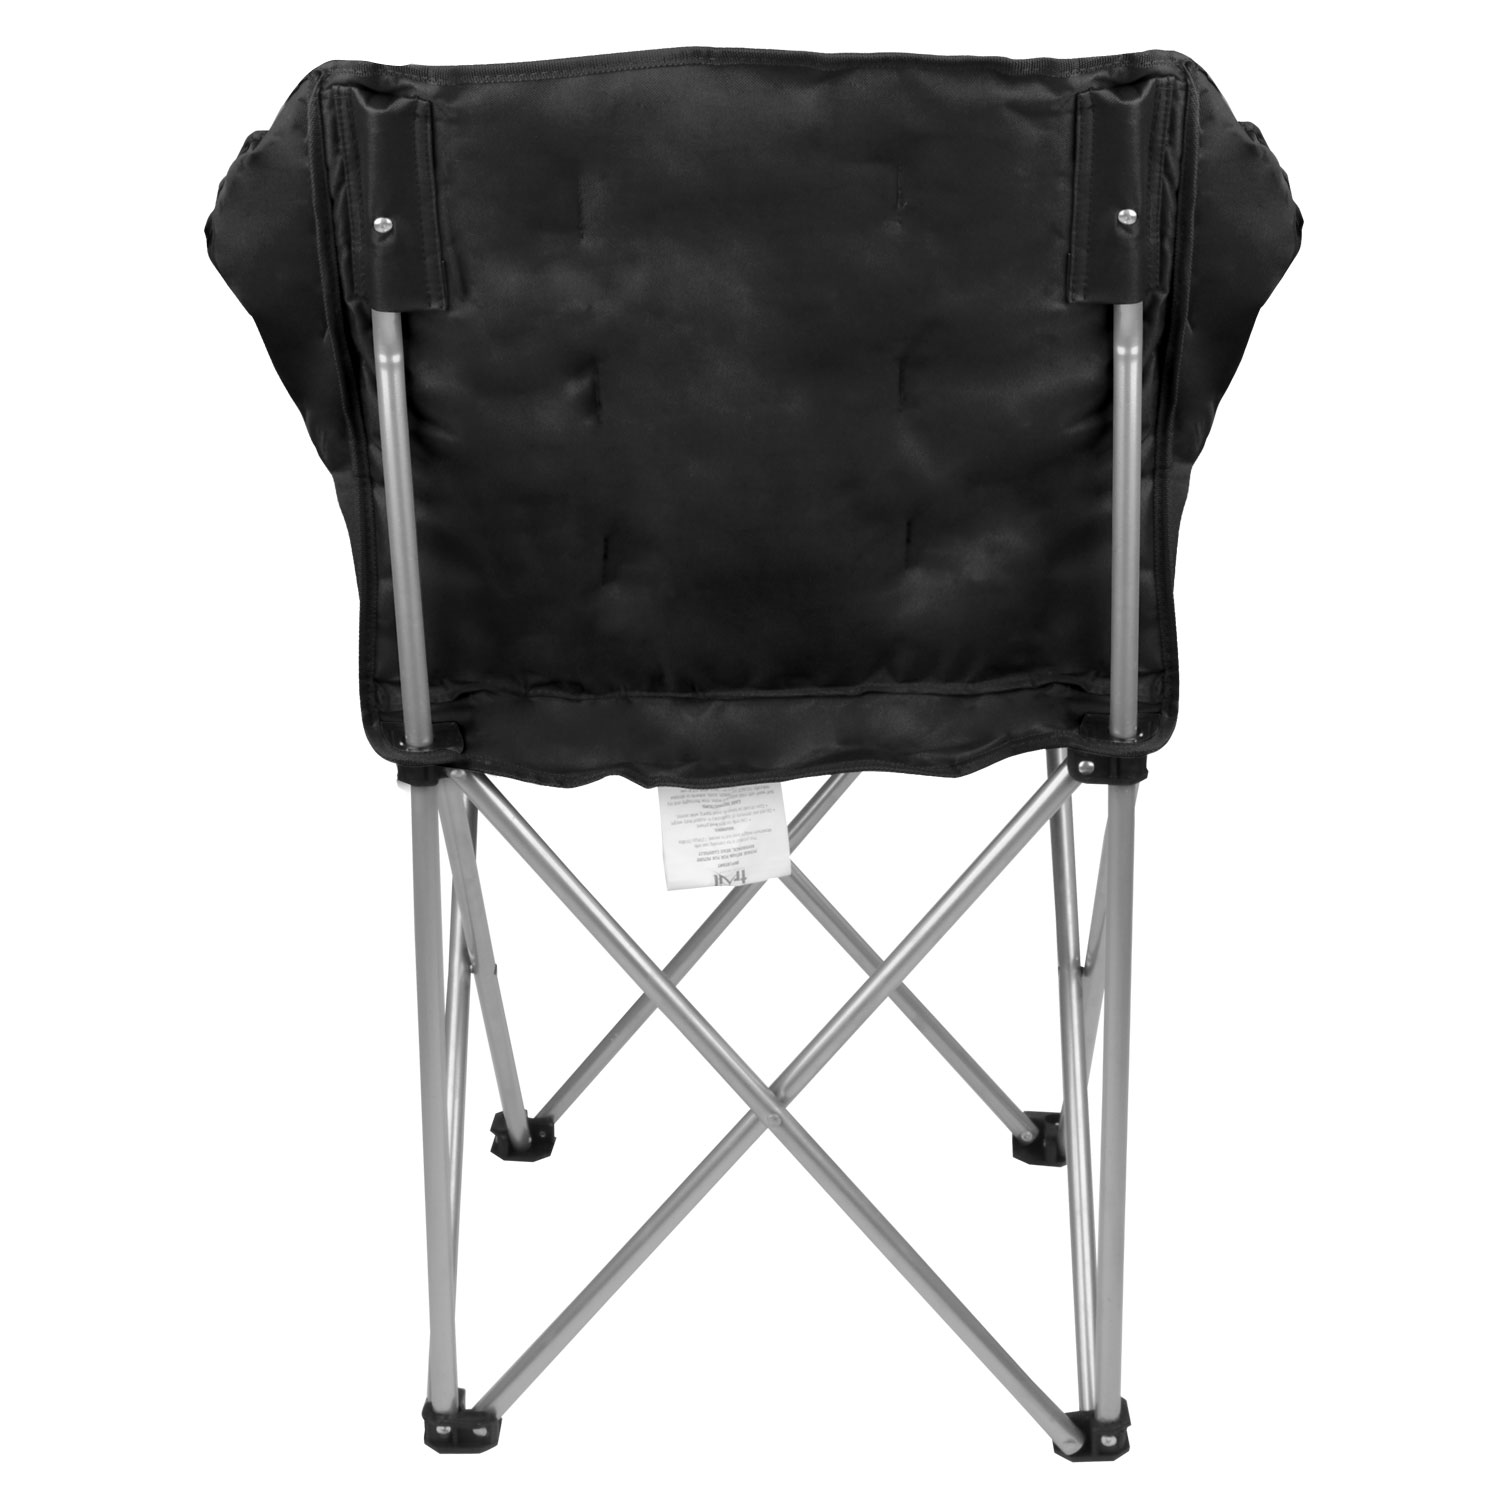 Folding Camping Chair Portable Padded Tub Seat Outdoor Fishing Festival By Tr